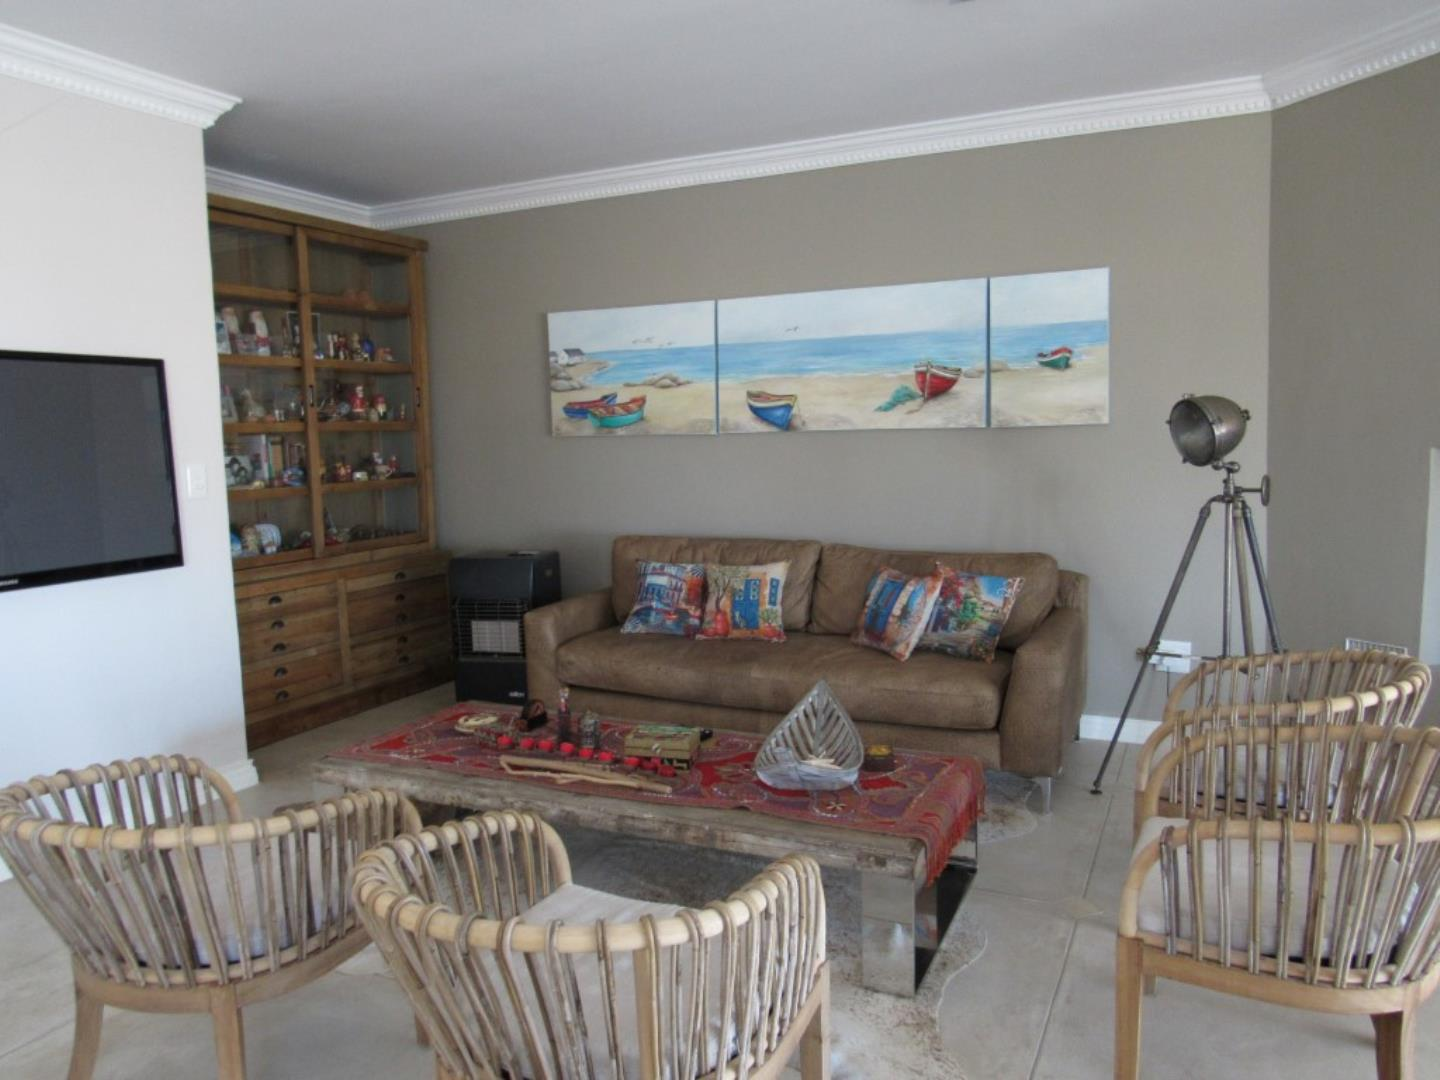 4 Bedroom  Townhouse for Sale in Swakopmund - Erongo